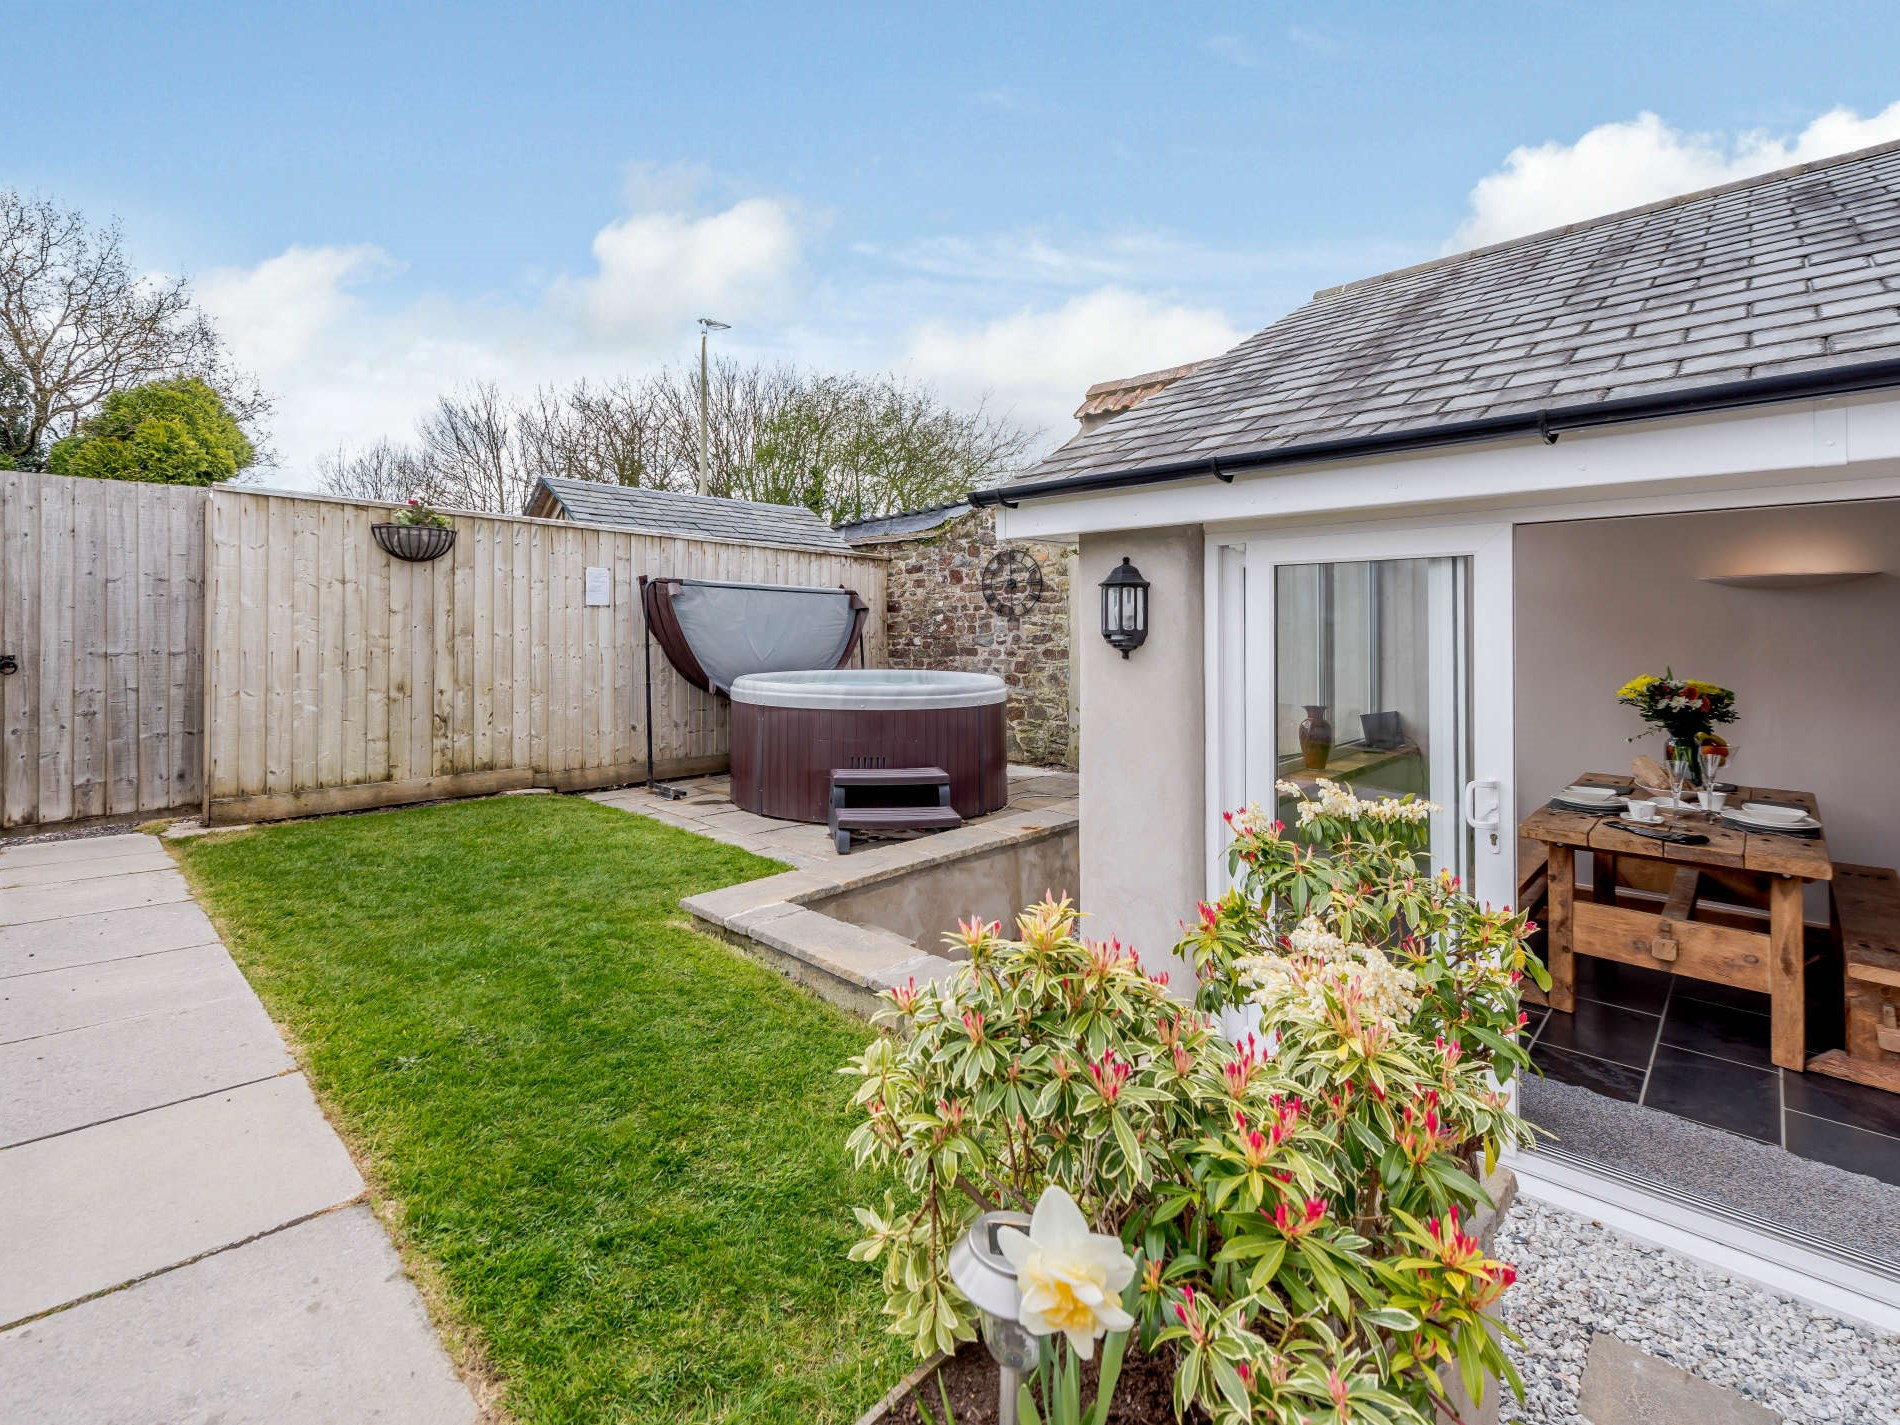 1 Bedroom Cottage in Umberleigh, Devon